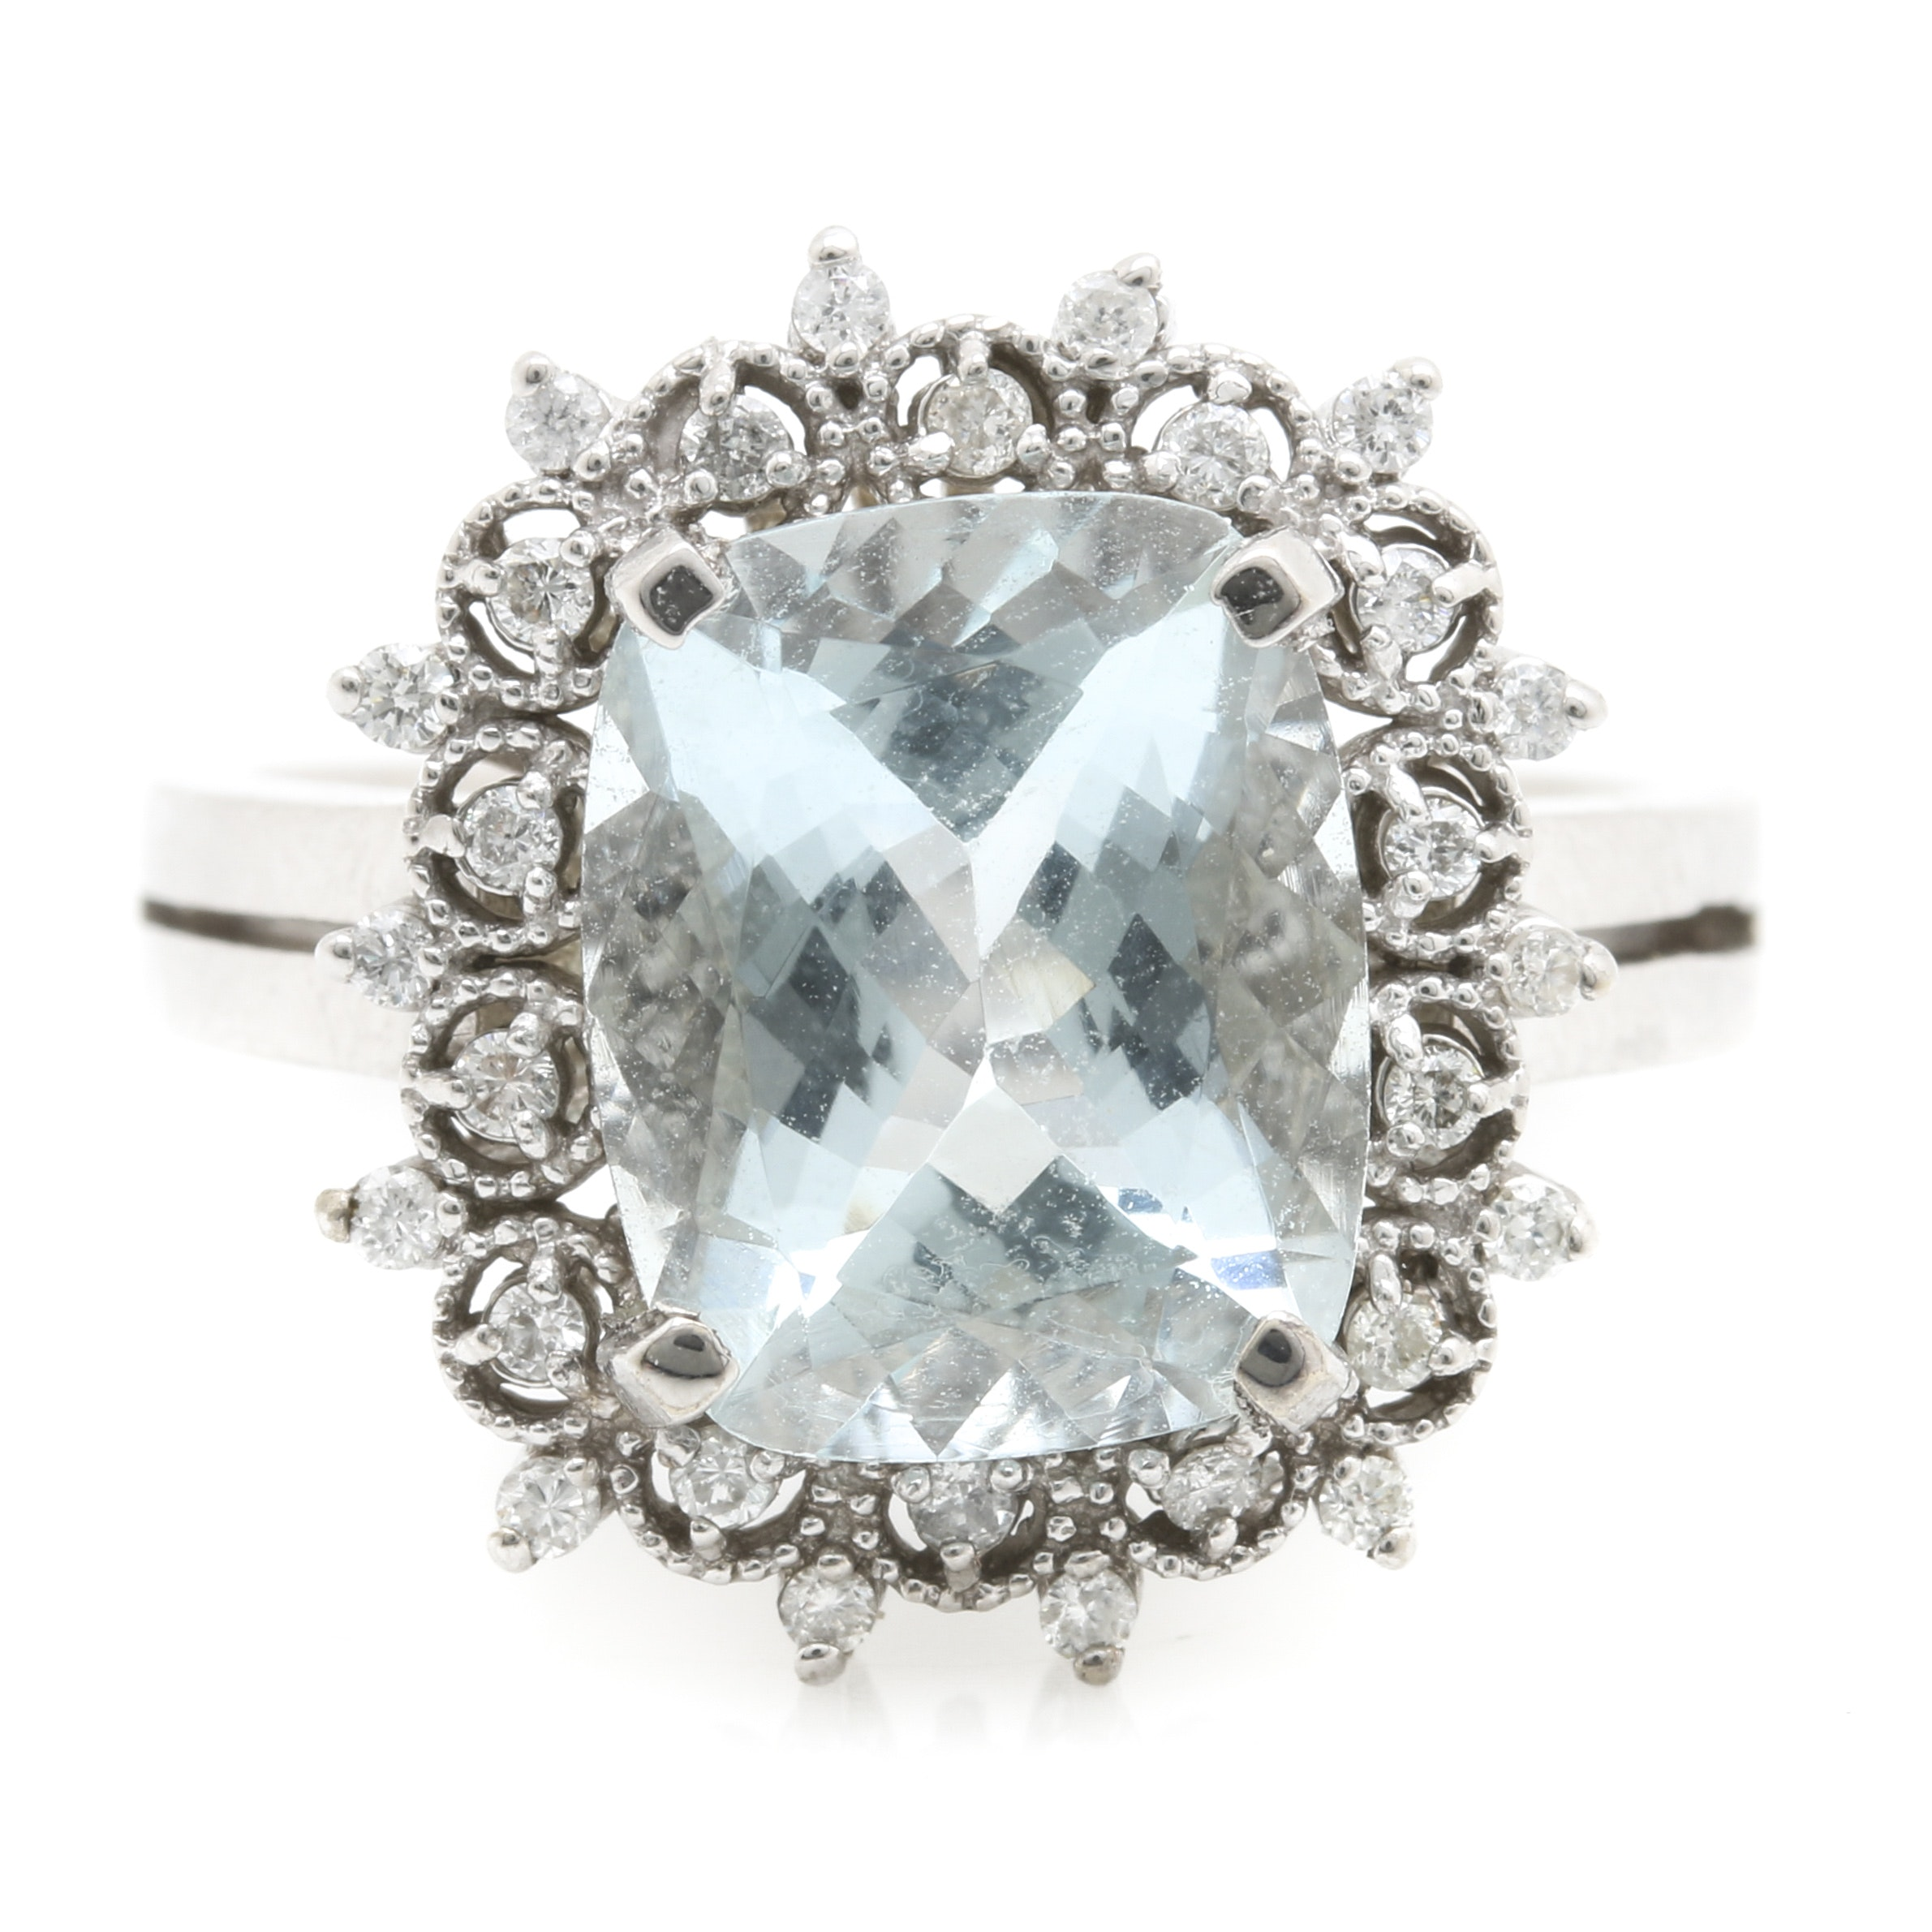 14K White Gold 3.62 CT Aquamarine Diamond Ring